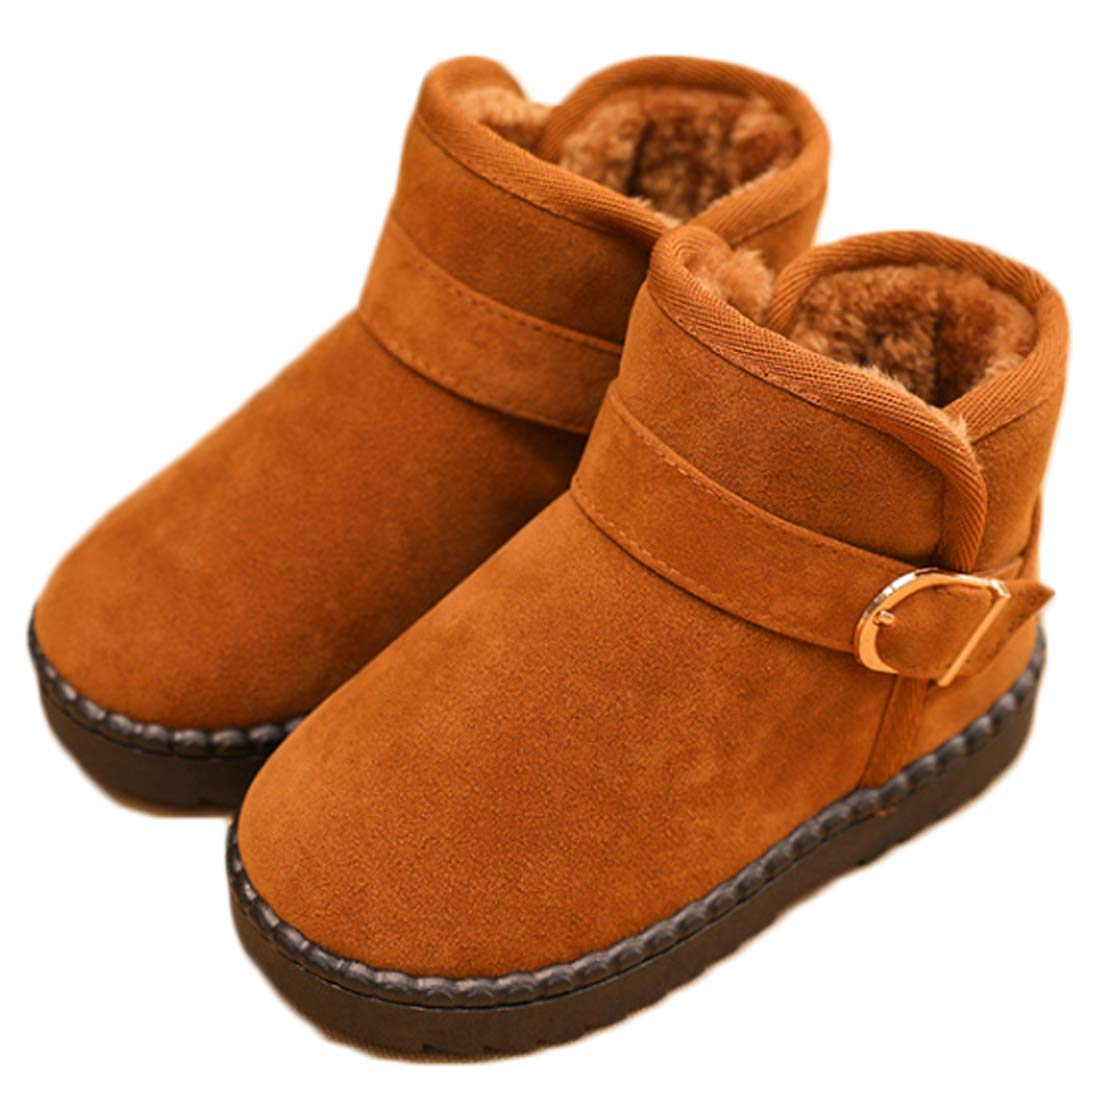 Aiweijia Children lightweight and durable anti-skiing boots Soft warm snow boots